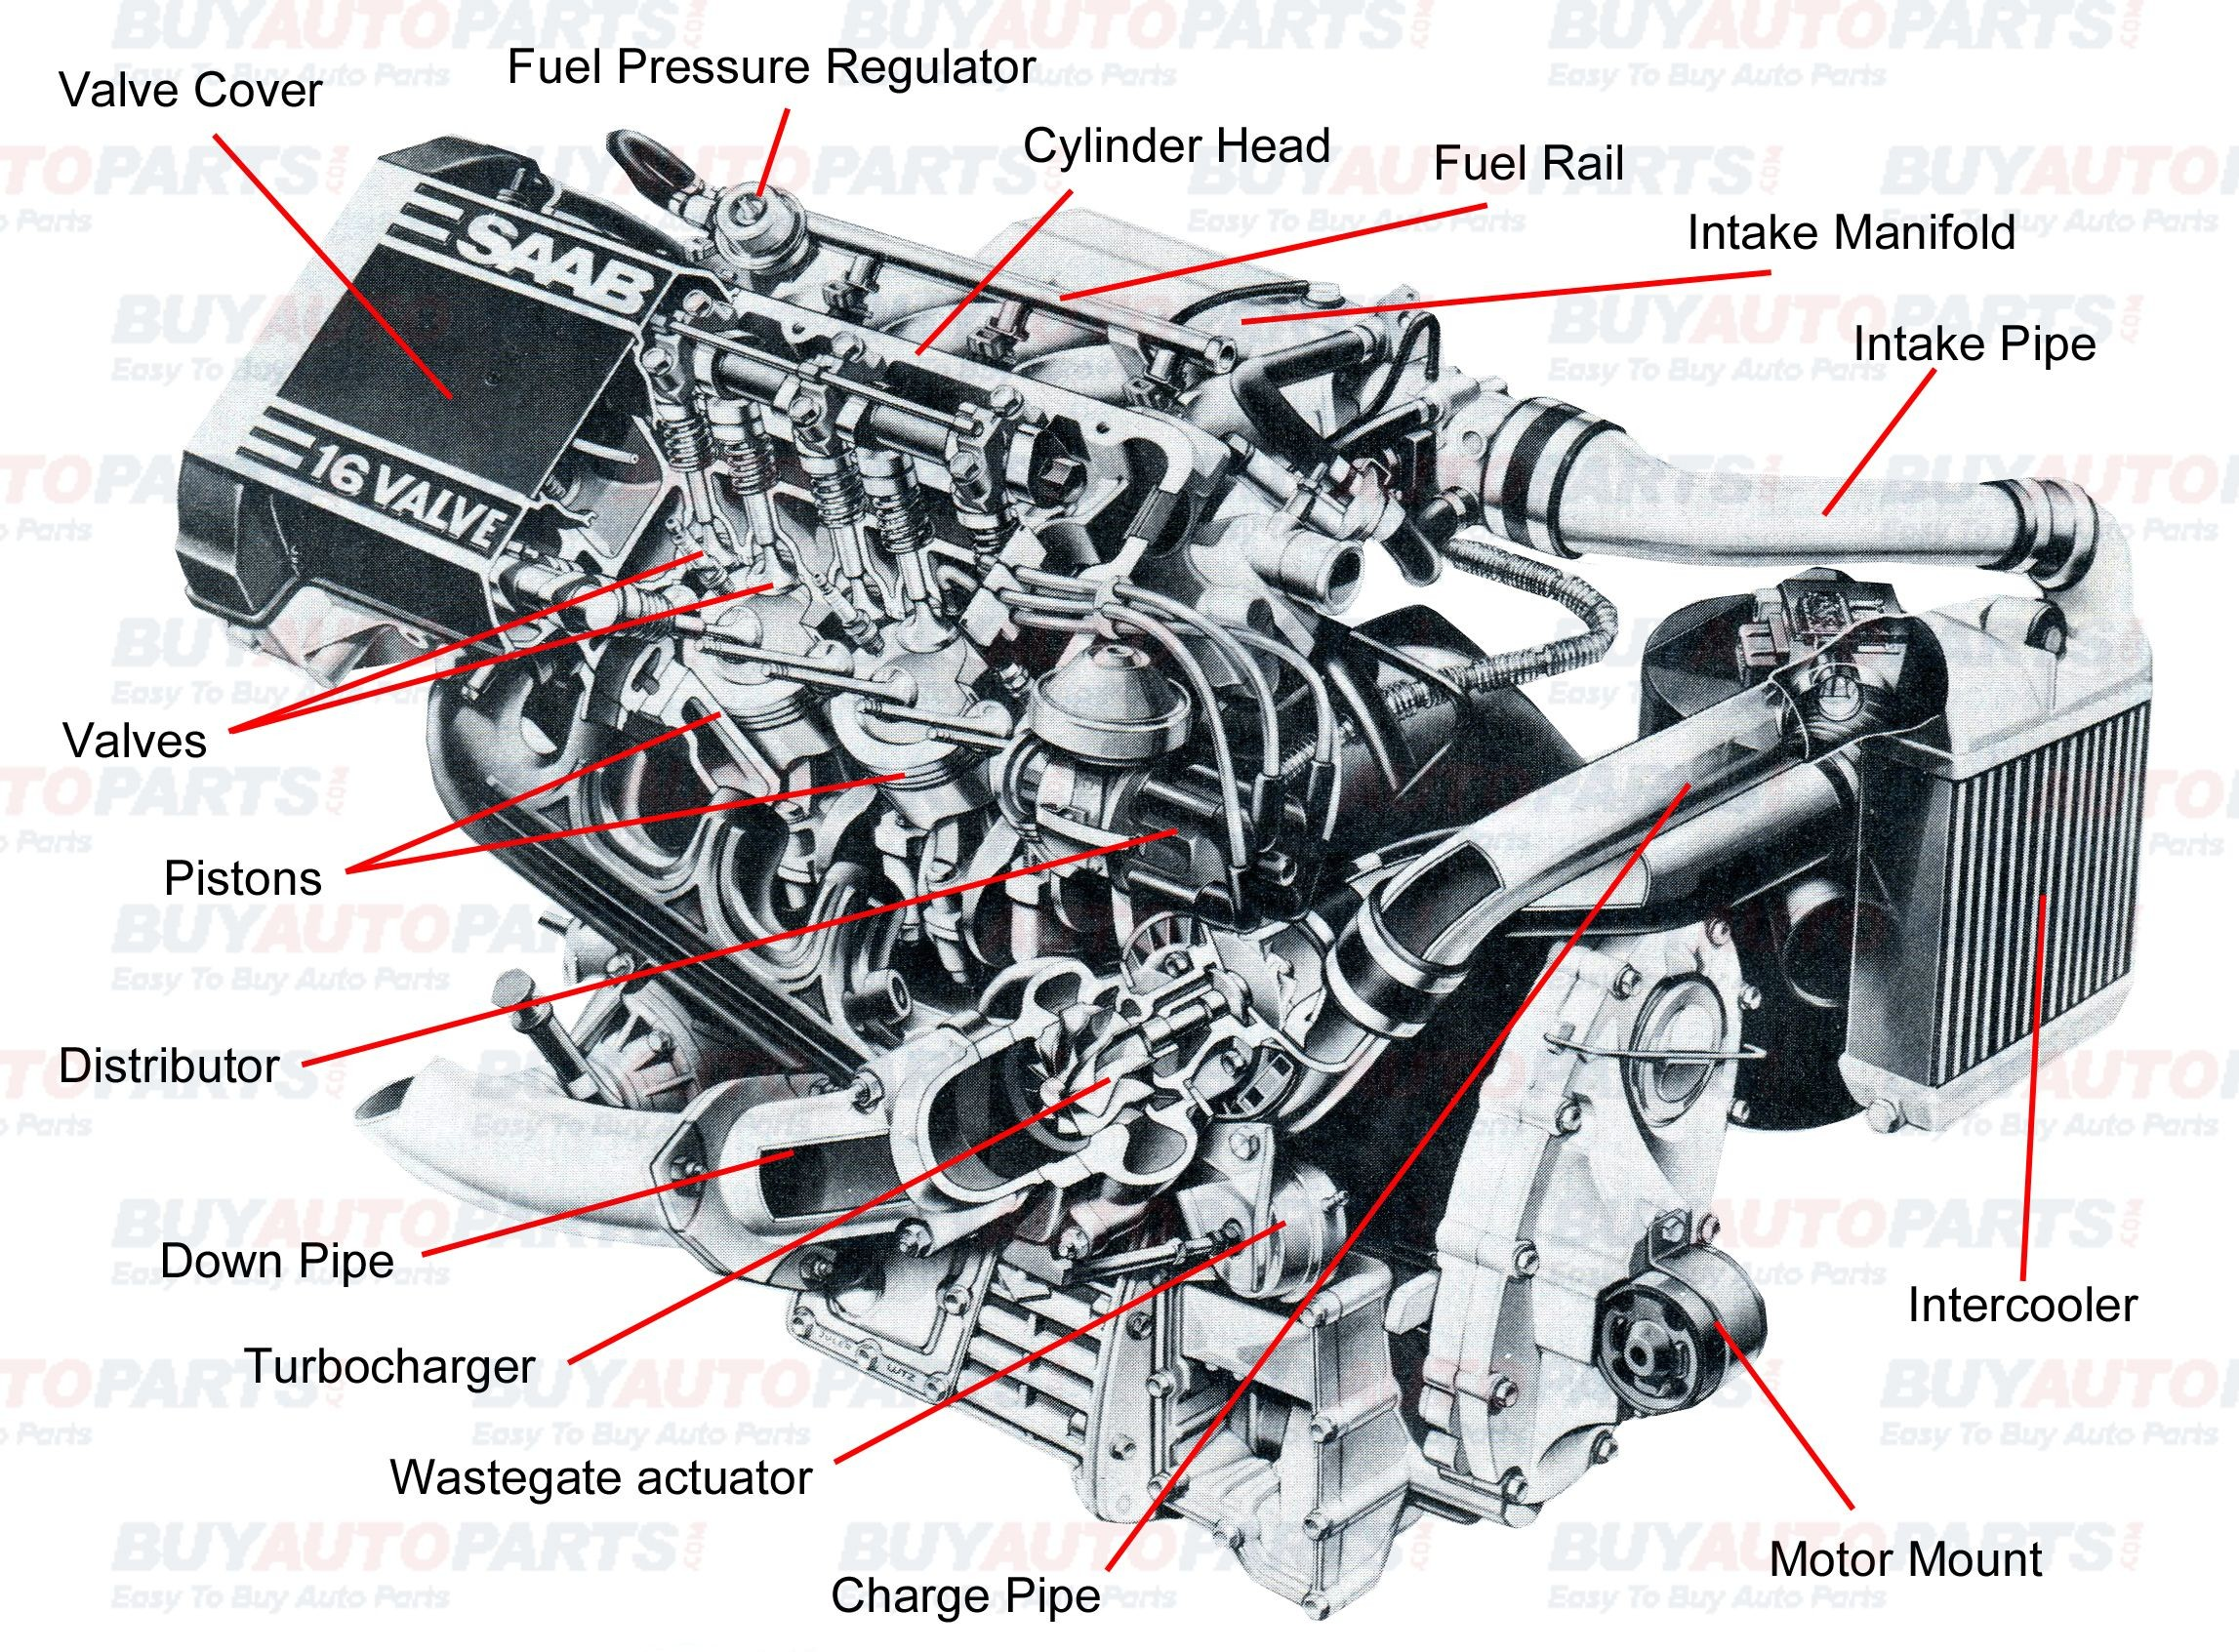 Basic Engine Diagram Pin by Jimmiejanet Testellamwfz On What Does An Engine with Turbo Of Basic Engine Diagram